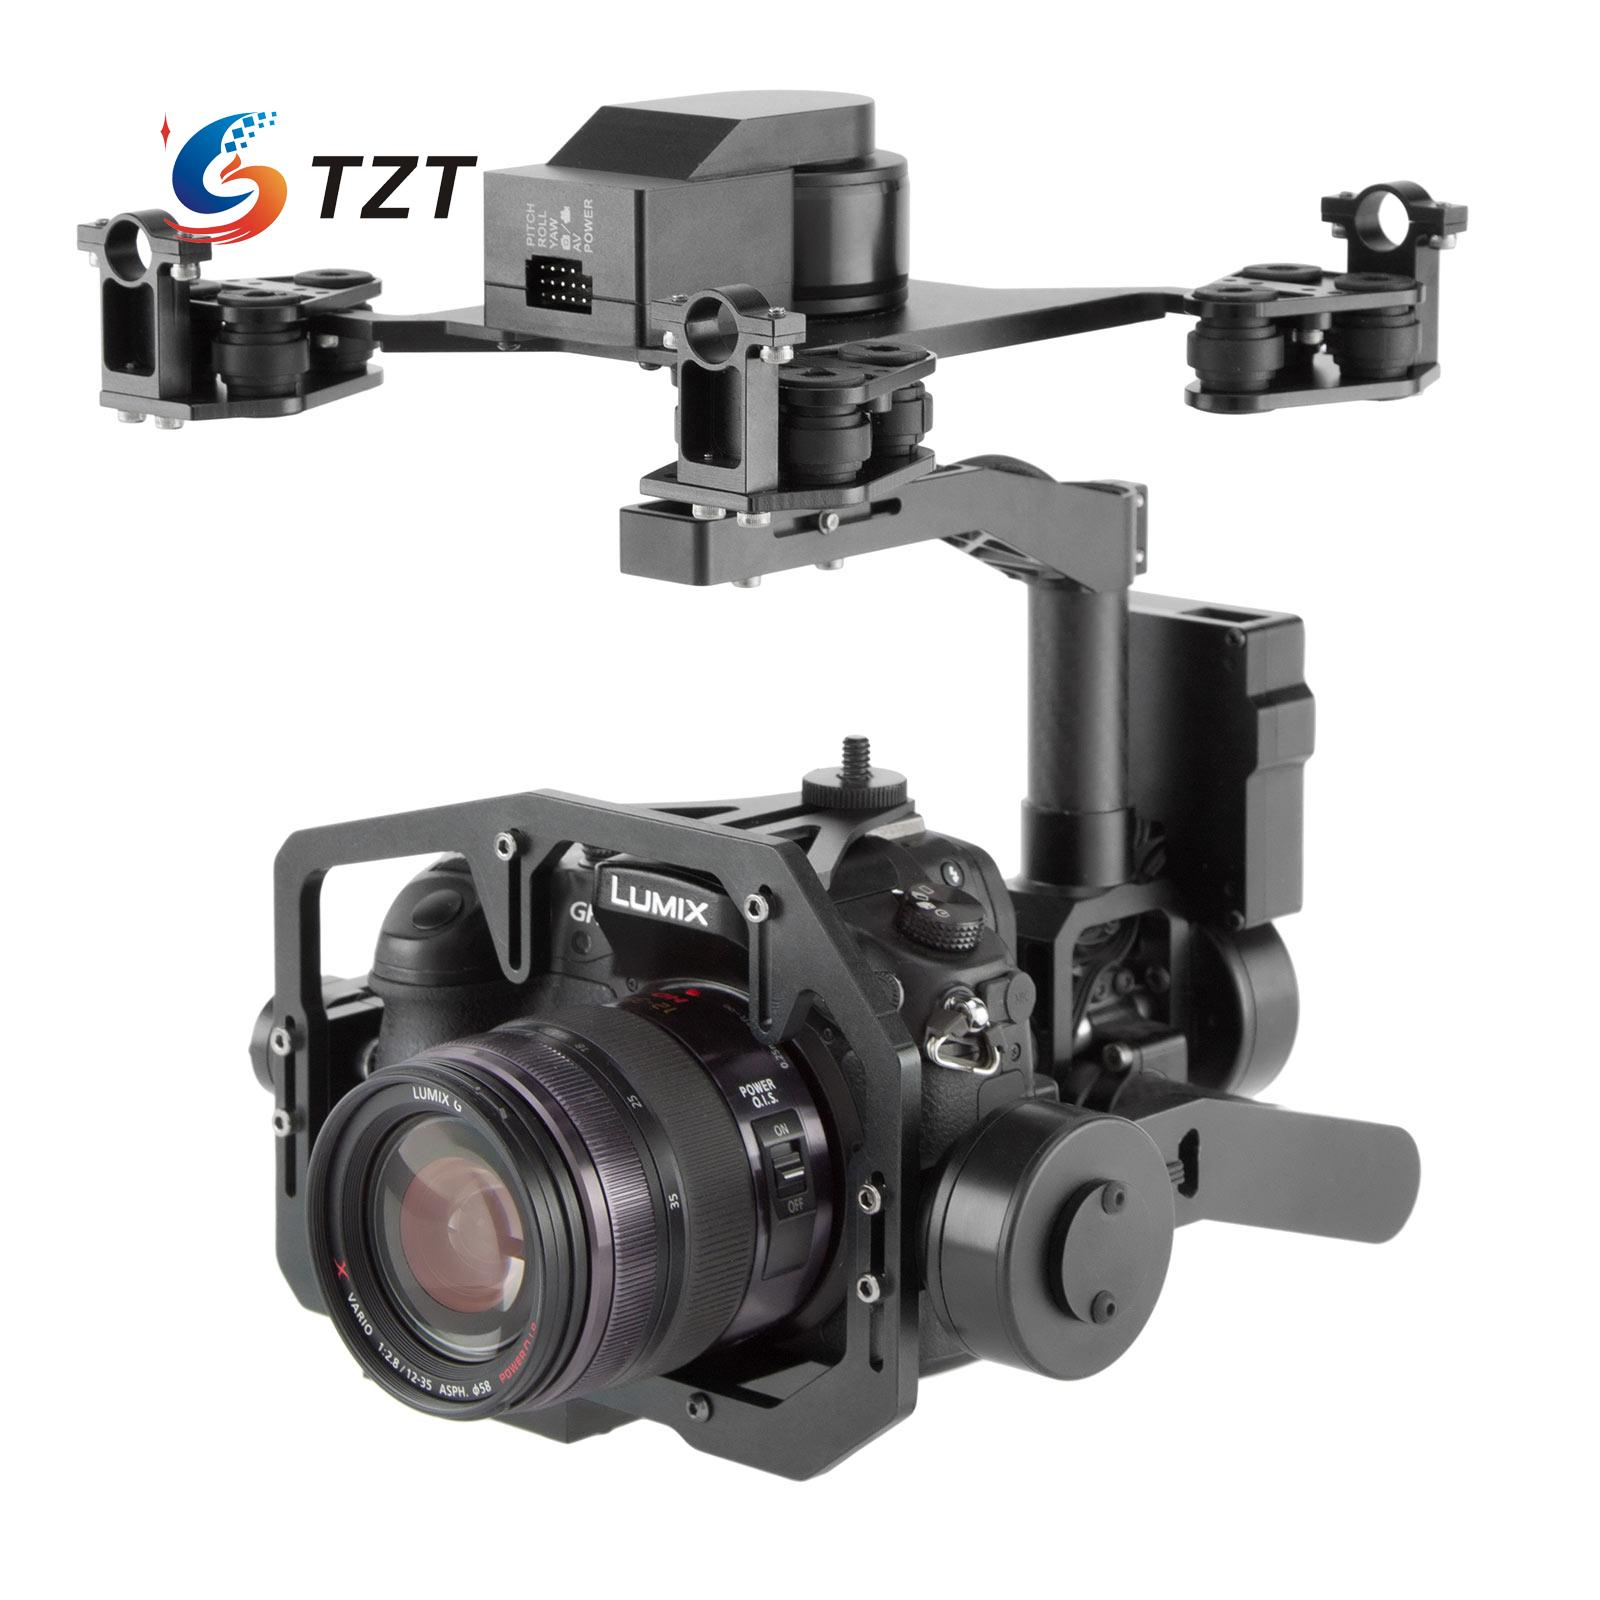 3 Axis FPV Brushless Gimbal PTZ with ALEX 32bit Control for DSLR Camera A7R2 NEX5 A5100